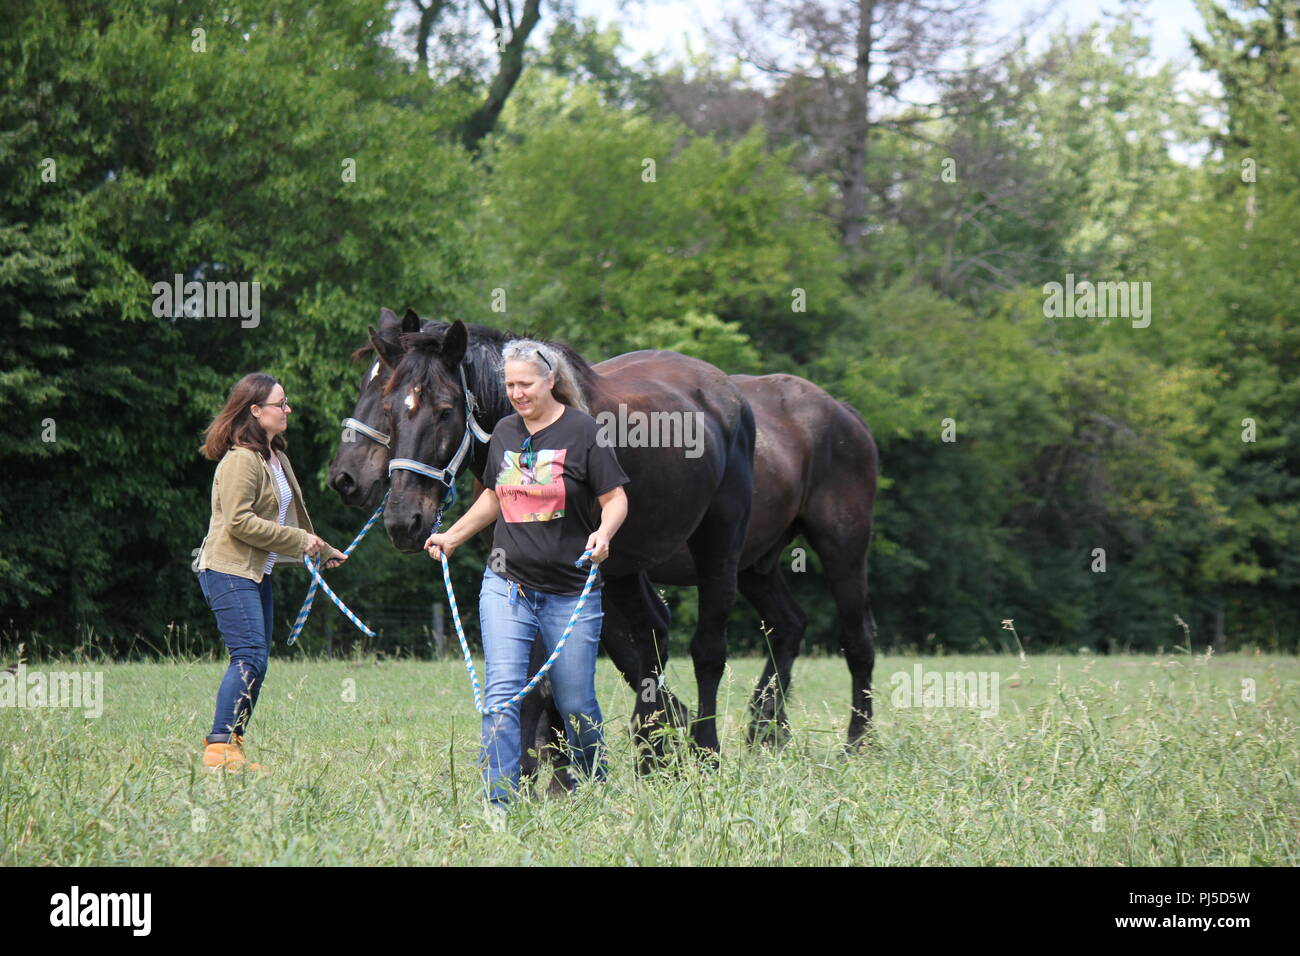 Two farm women leading two Percheron draft horses at Wagner Farm in suburban Glenview, Illinois on a summer day. - Stock Image